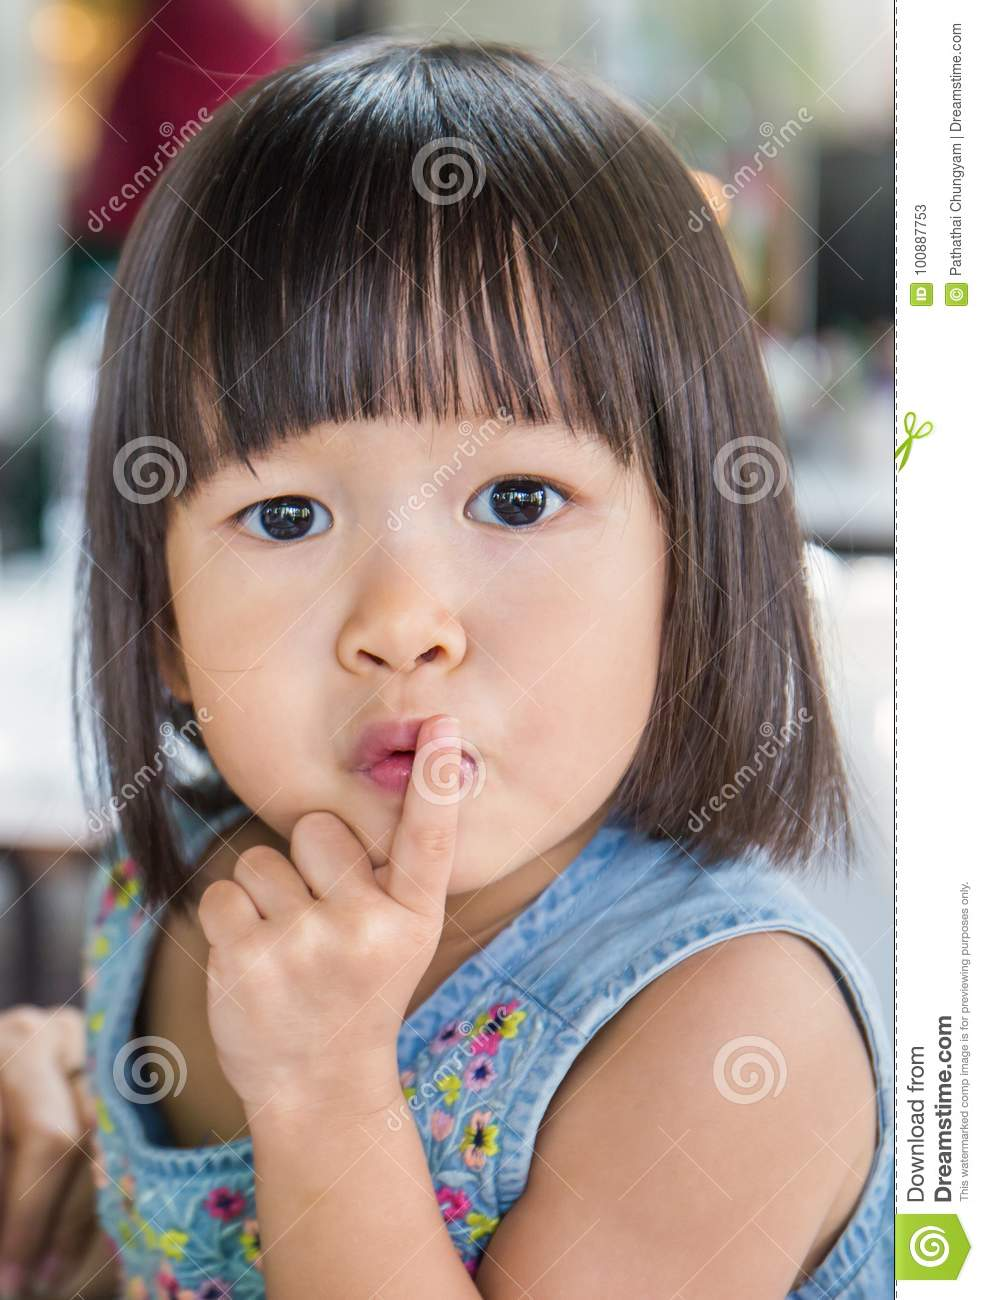 Portrait Of Asian Little Girl Say Be Quiet Small Asian Girl With One Finger On Her Mouth Close Up And Explession